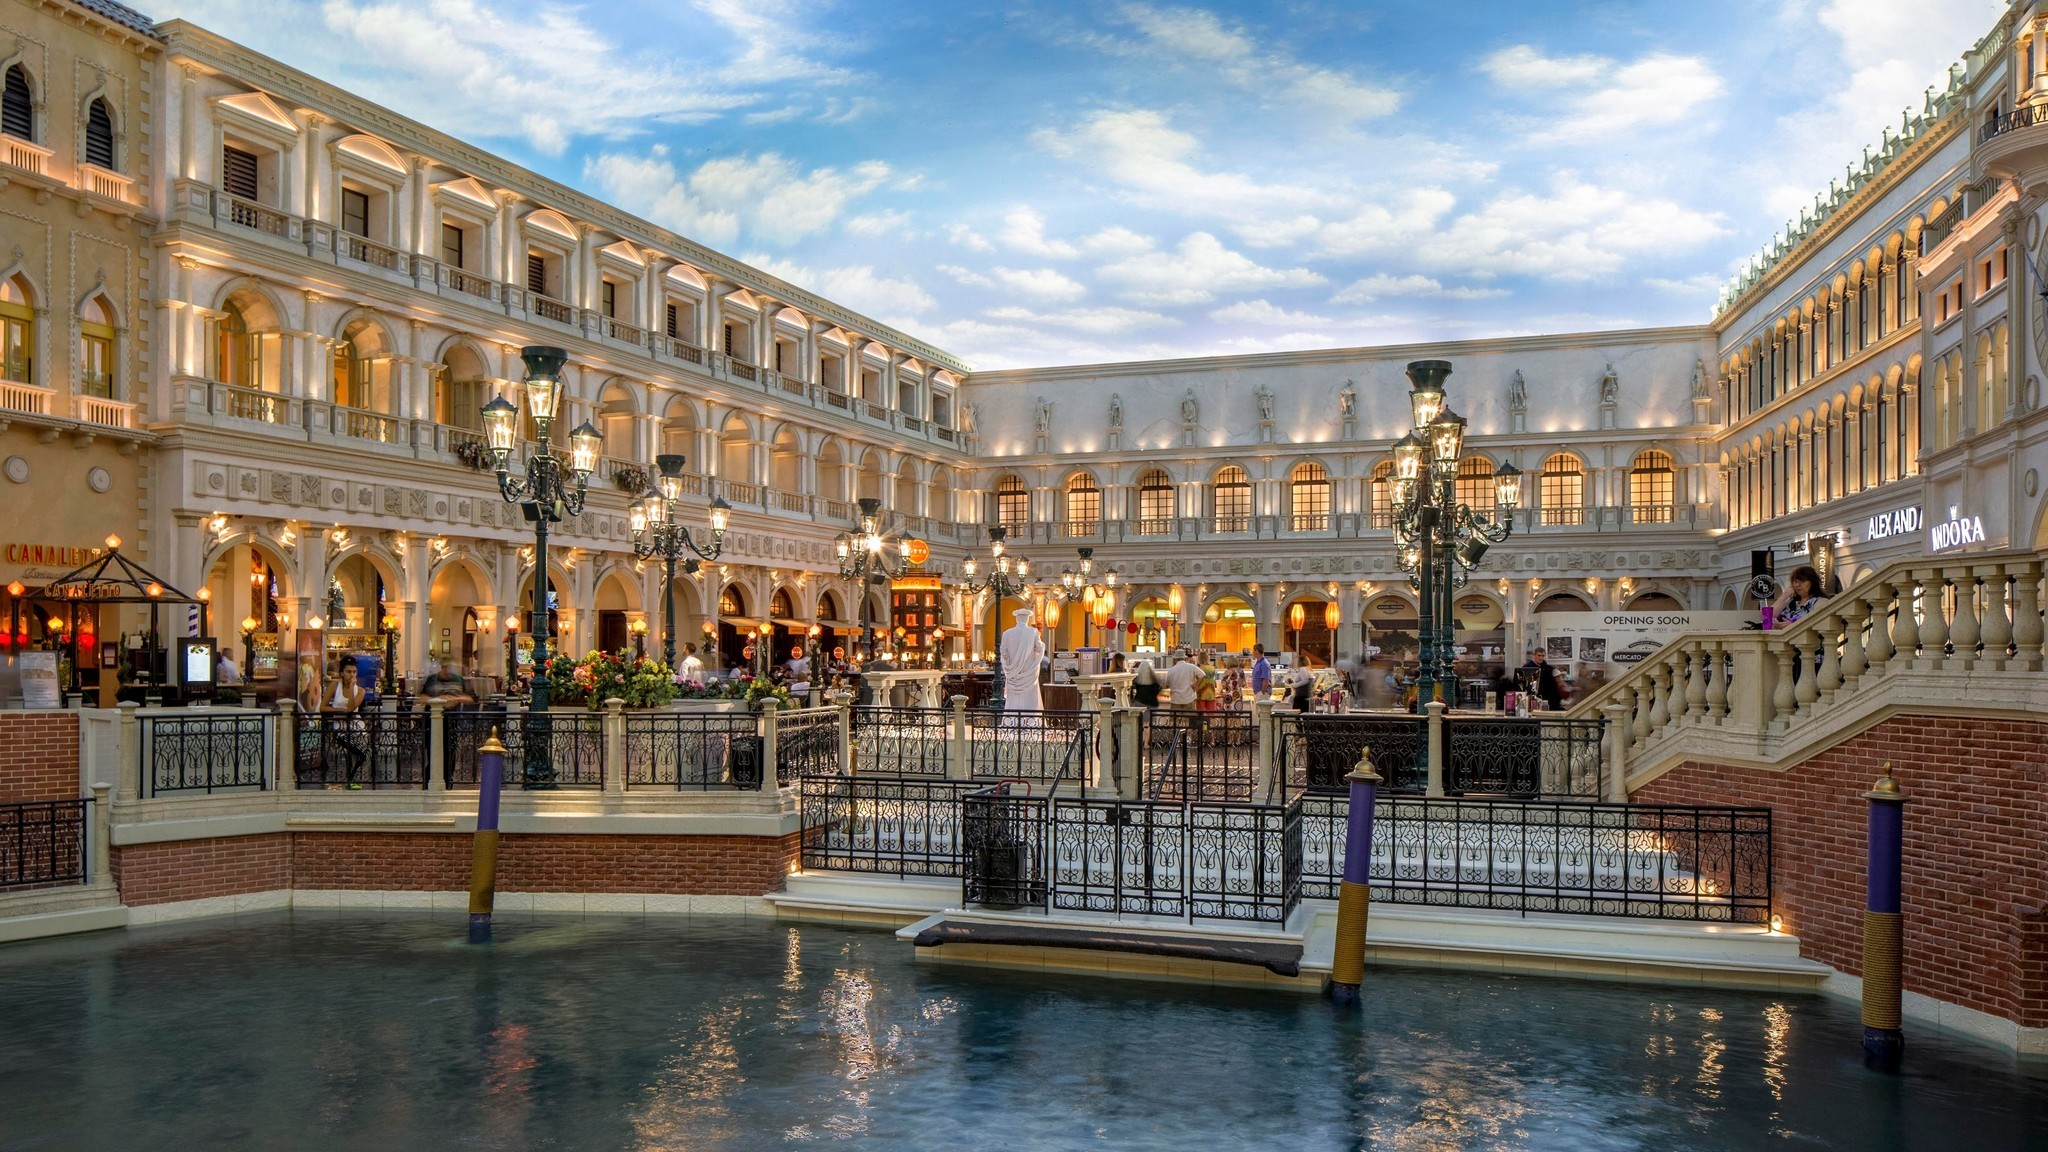 The Forum Shops' success led the way for other themed shopping centers at resorts along the Strip. At the Venetian, the Grand Canal Shoppes opened in 1999, offering guests an opportunity to float past stores in gondolas.